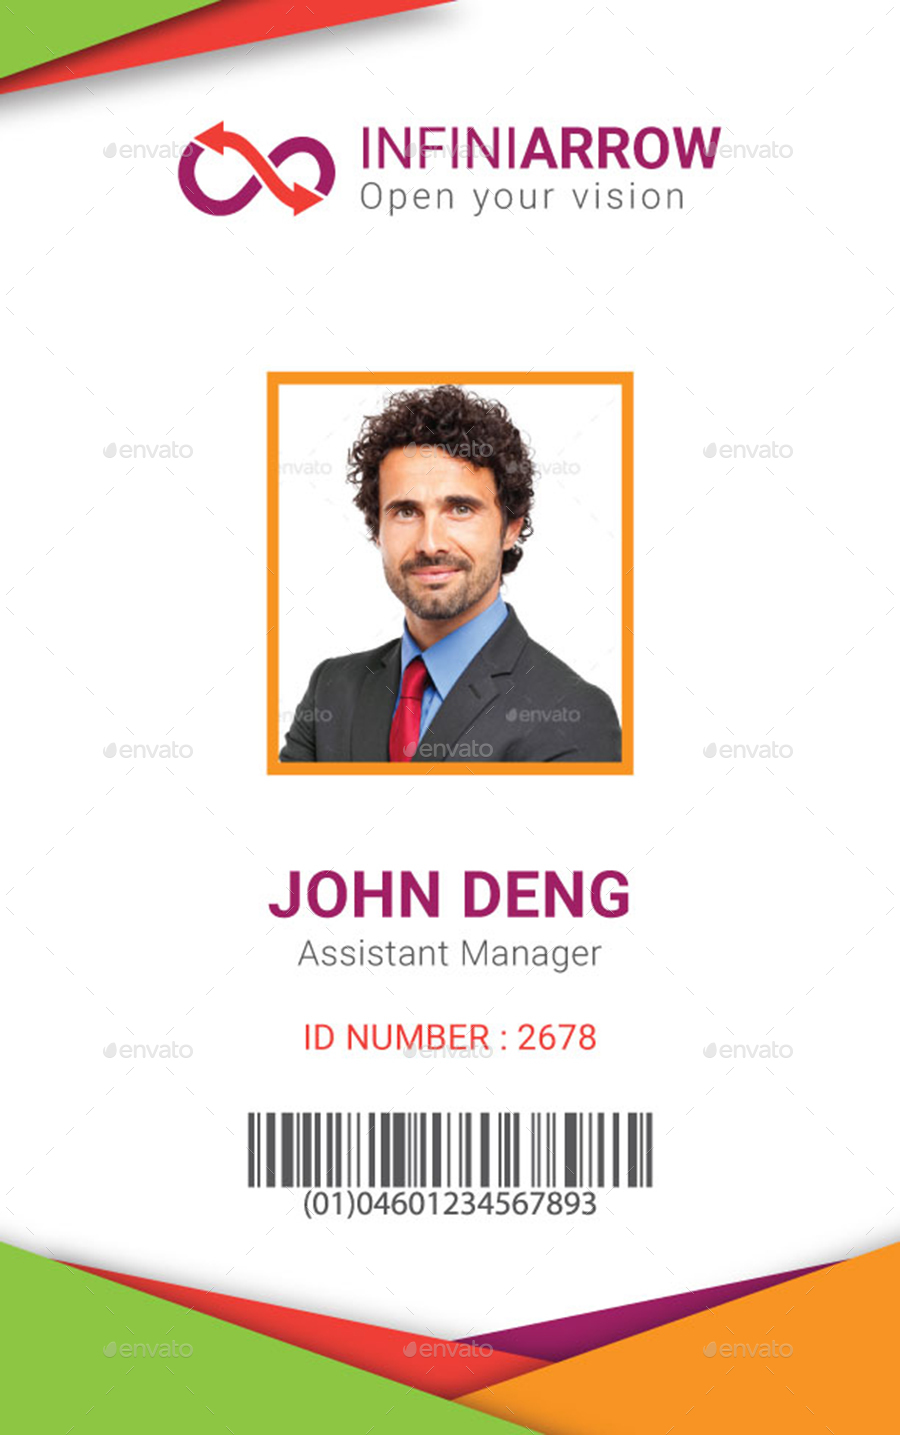 Multipurpose Business ID Card Template by dotnpix | GraphicRiver